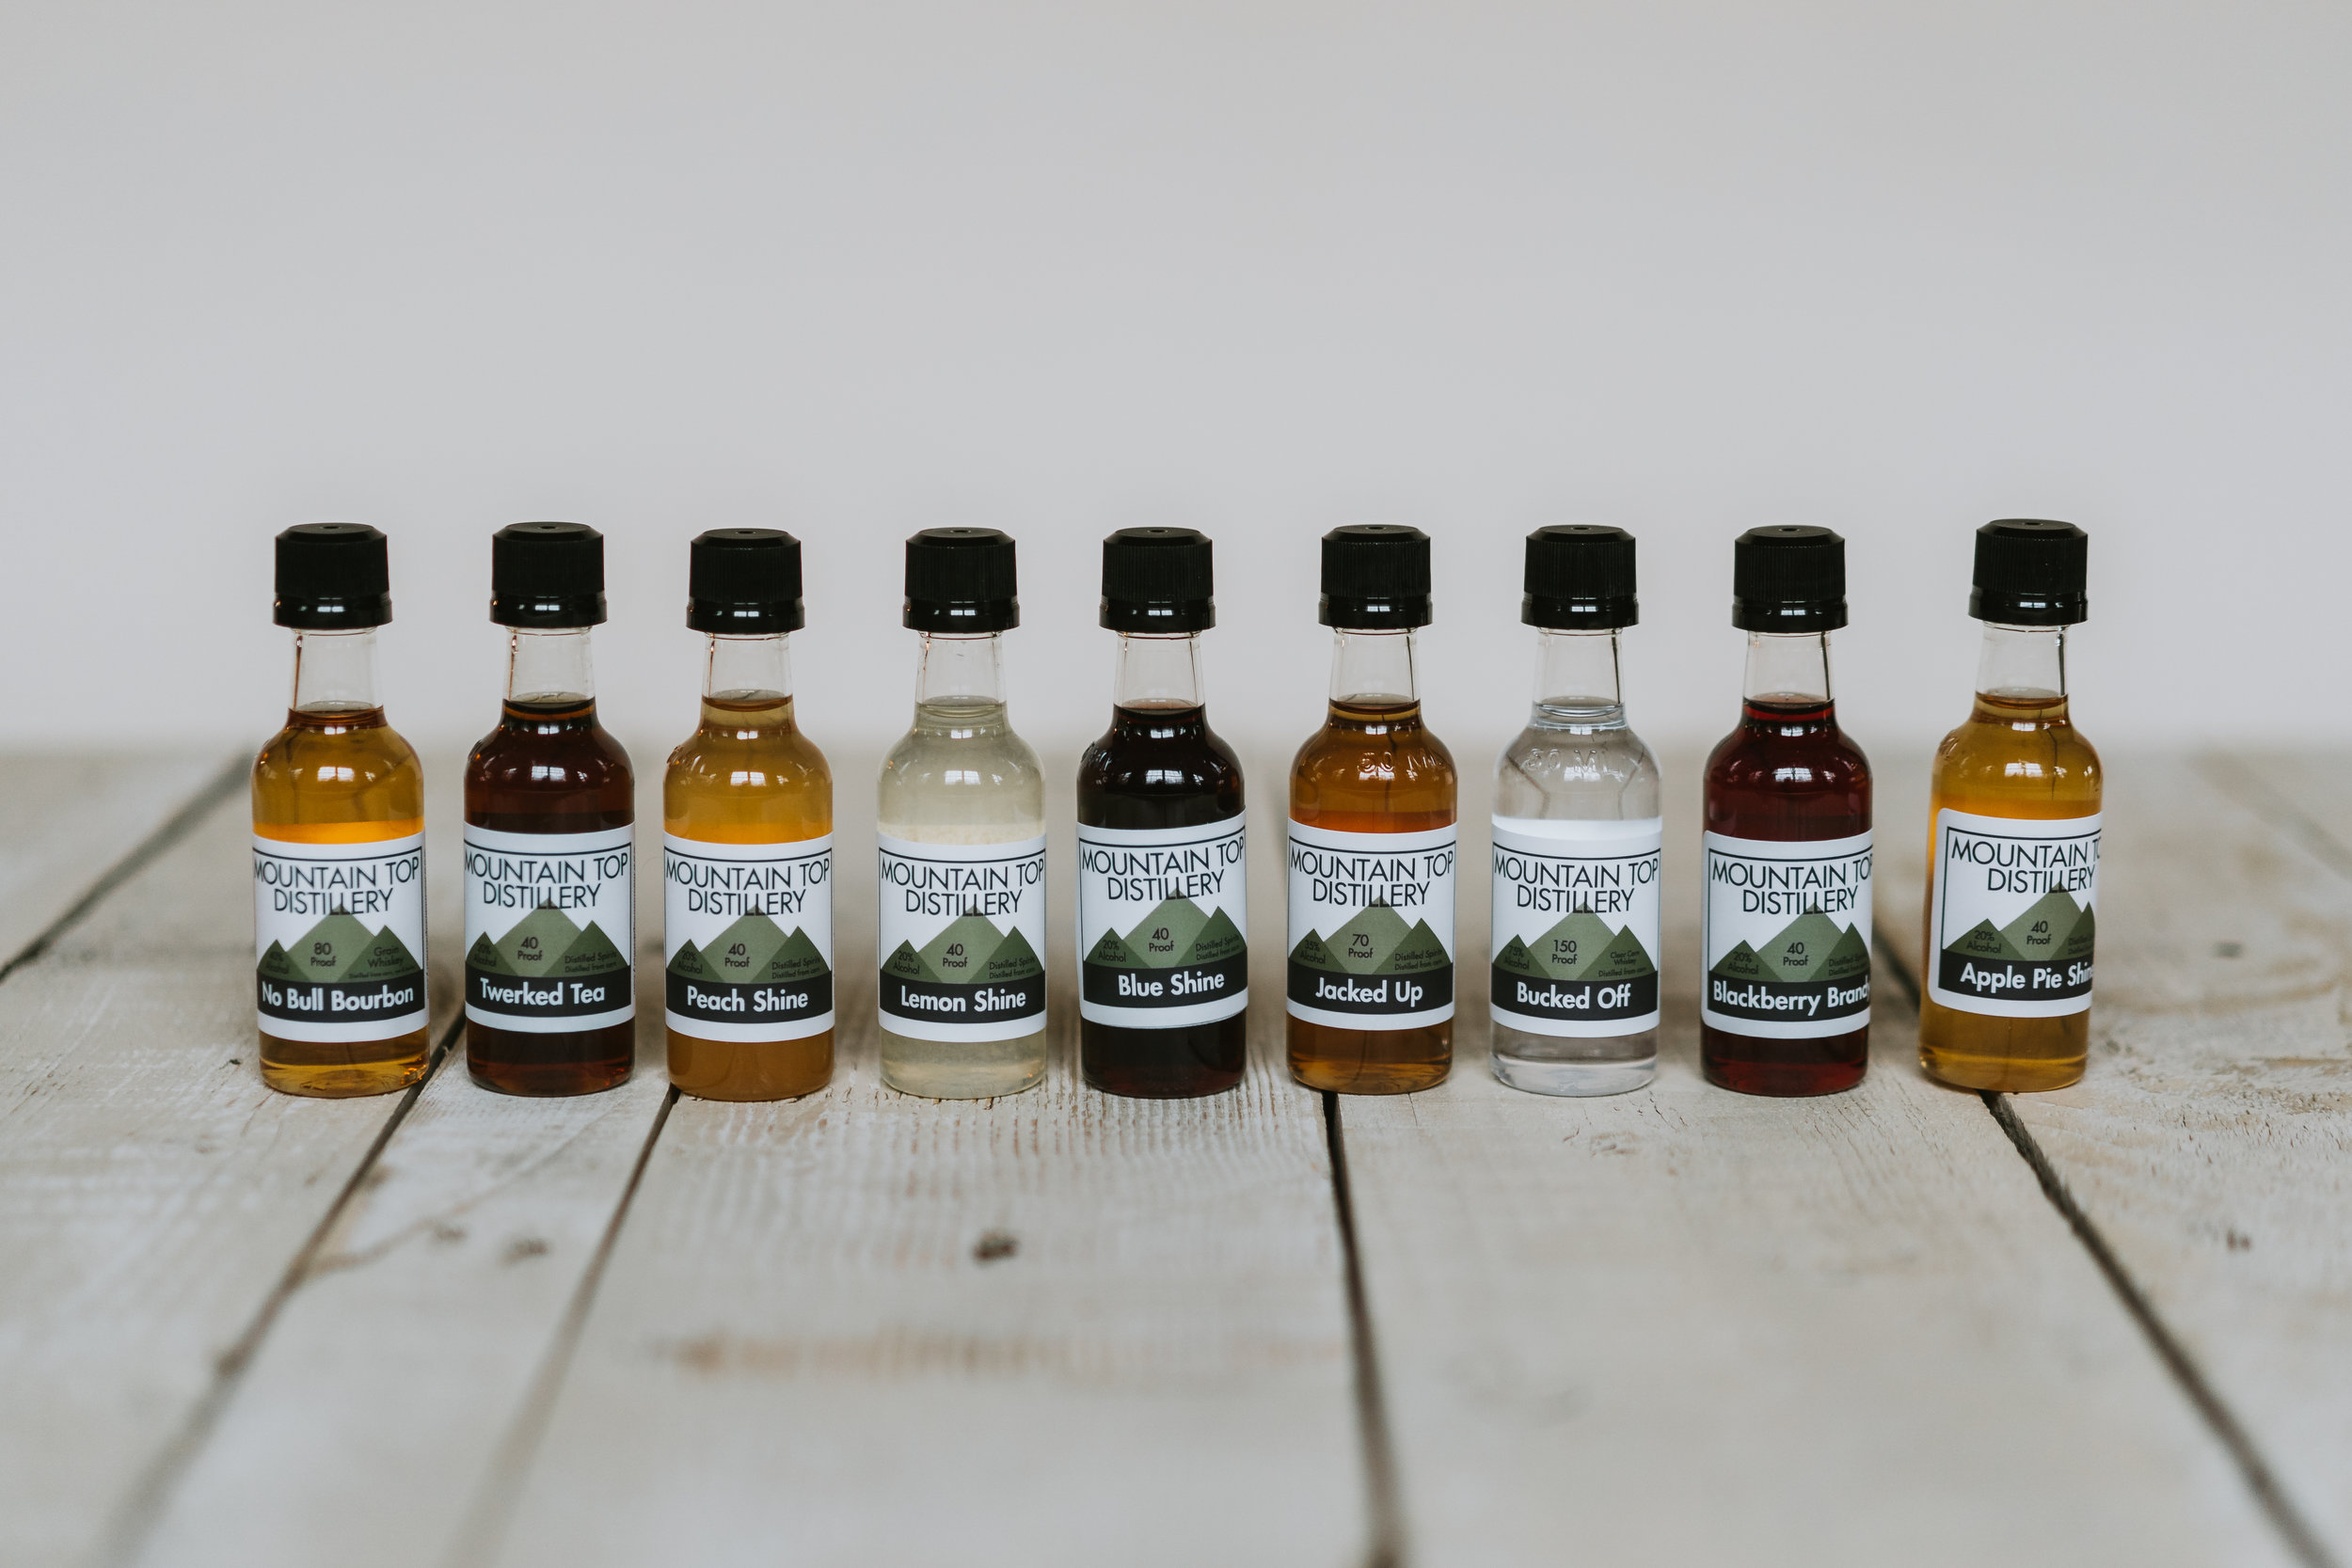 Nip bottles of Mountain Top Distillery product in Williamsport PA